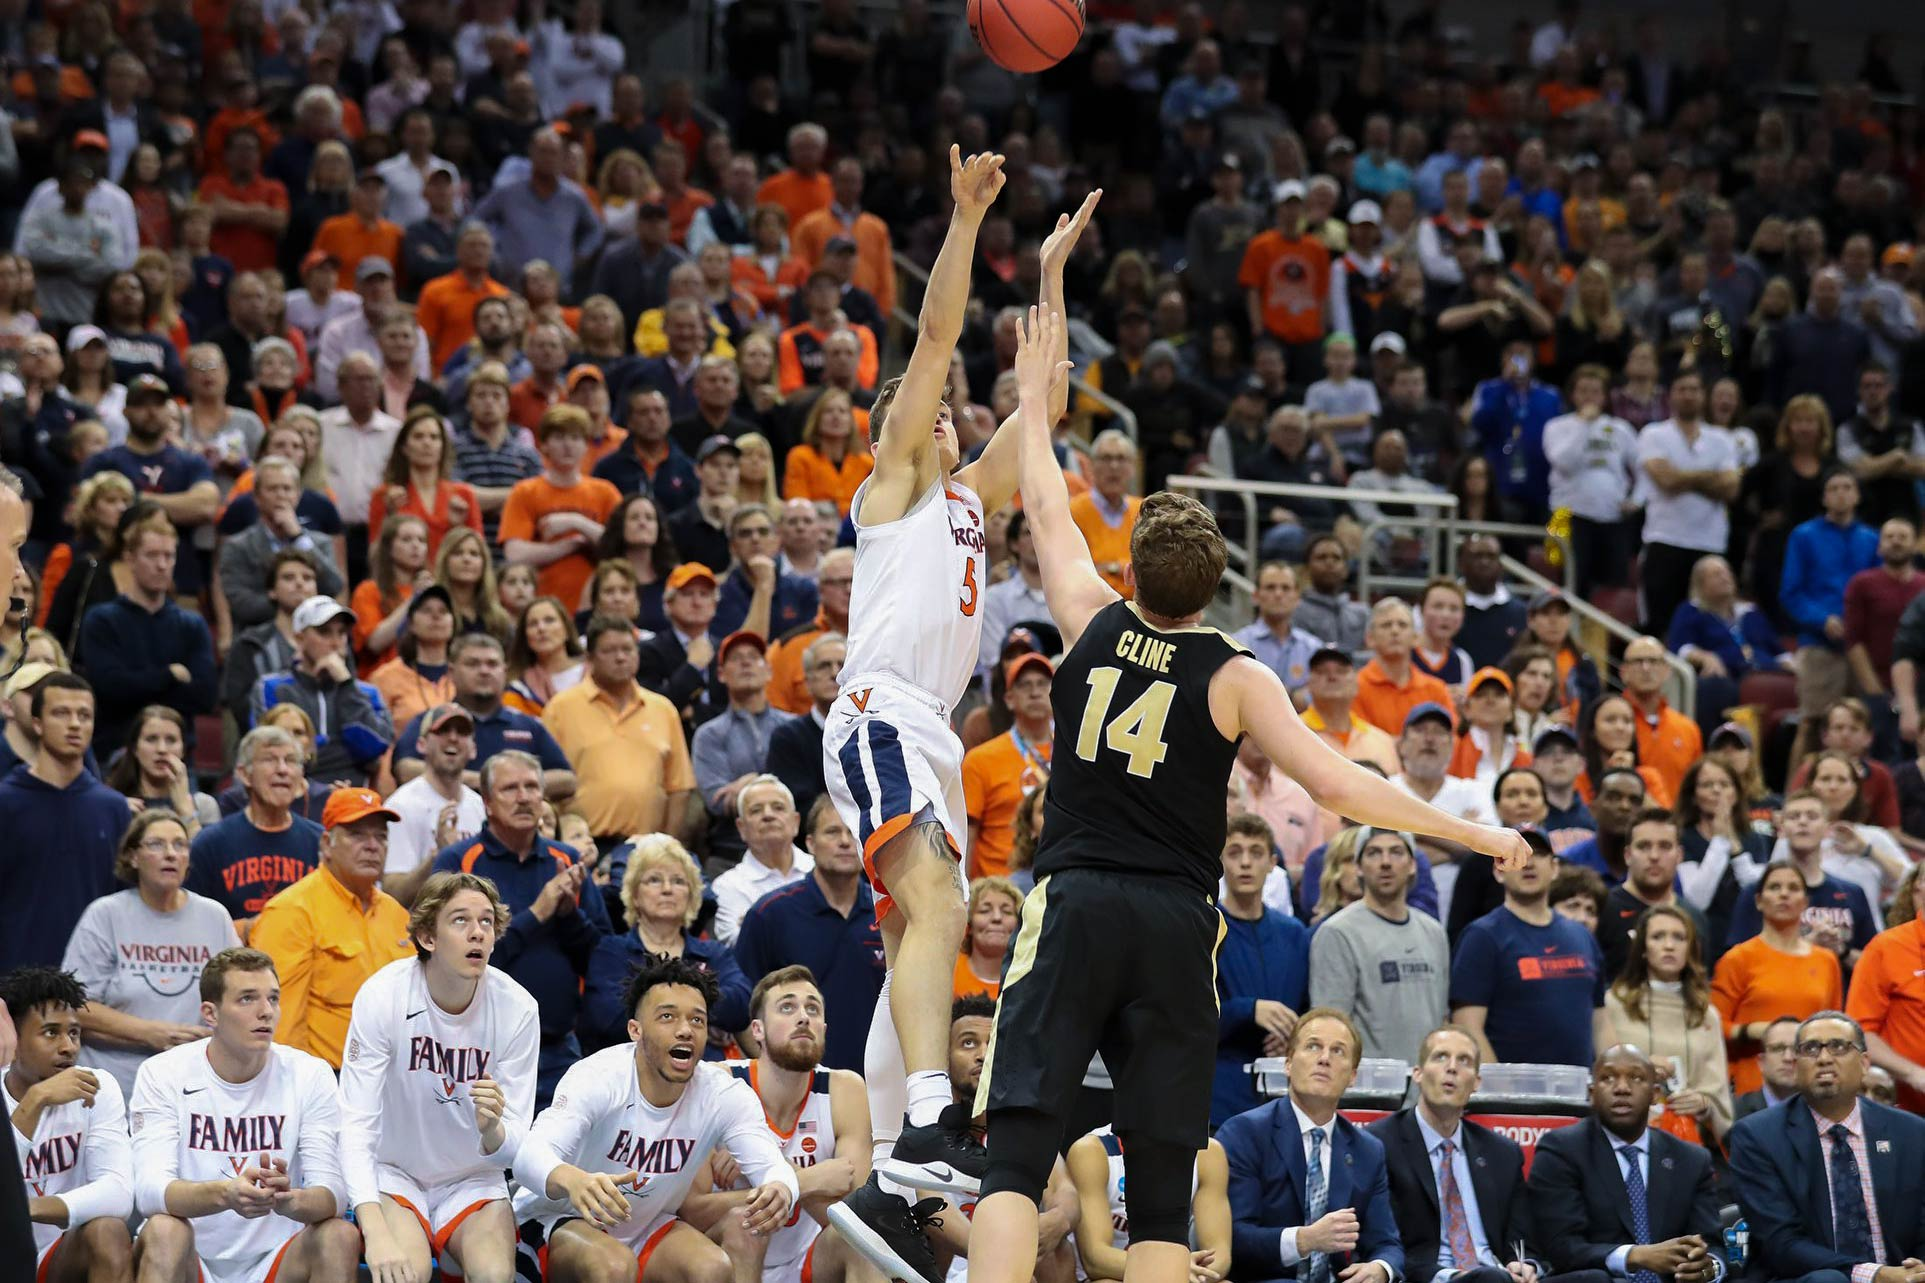 Will it go in? UVA basketball can be stressful for fans who have no real physical outlet for their nervous energy.